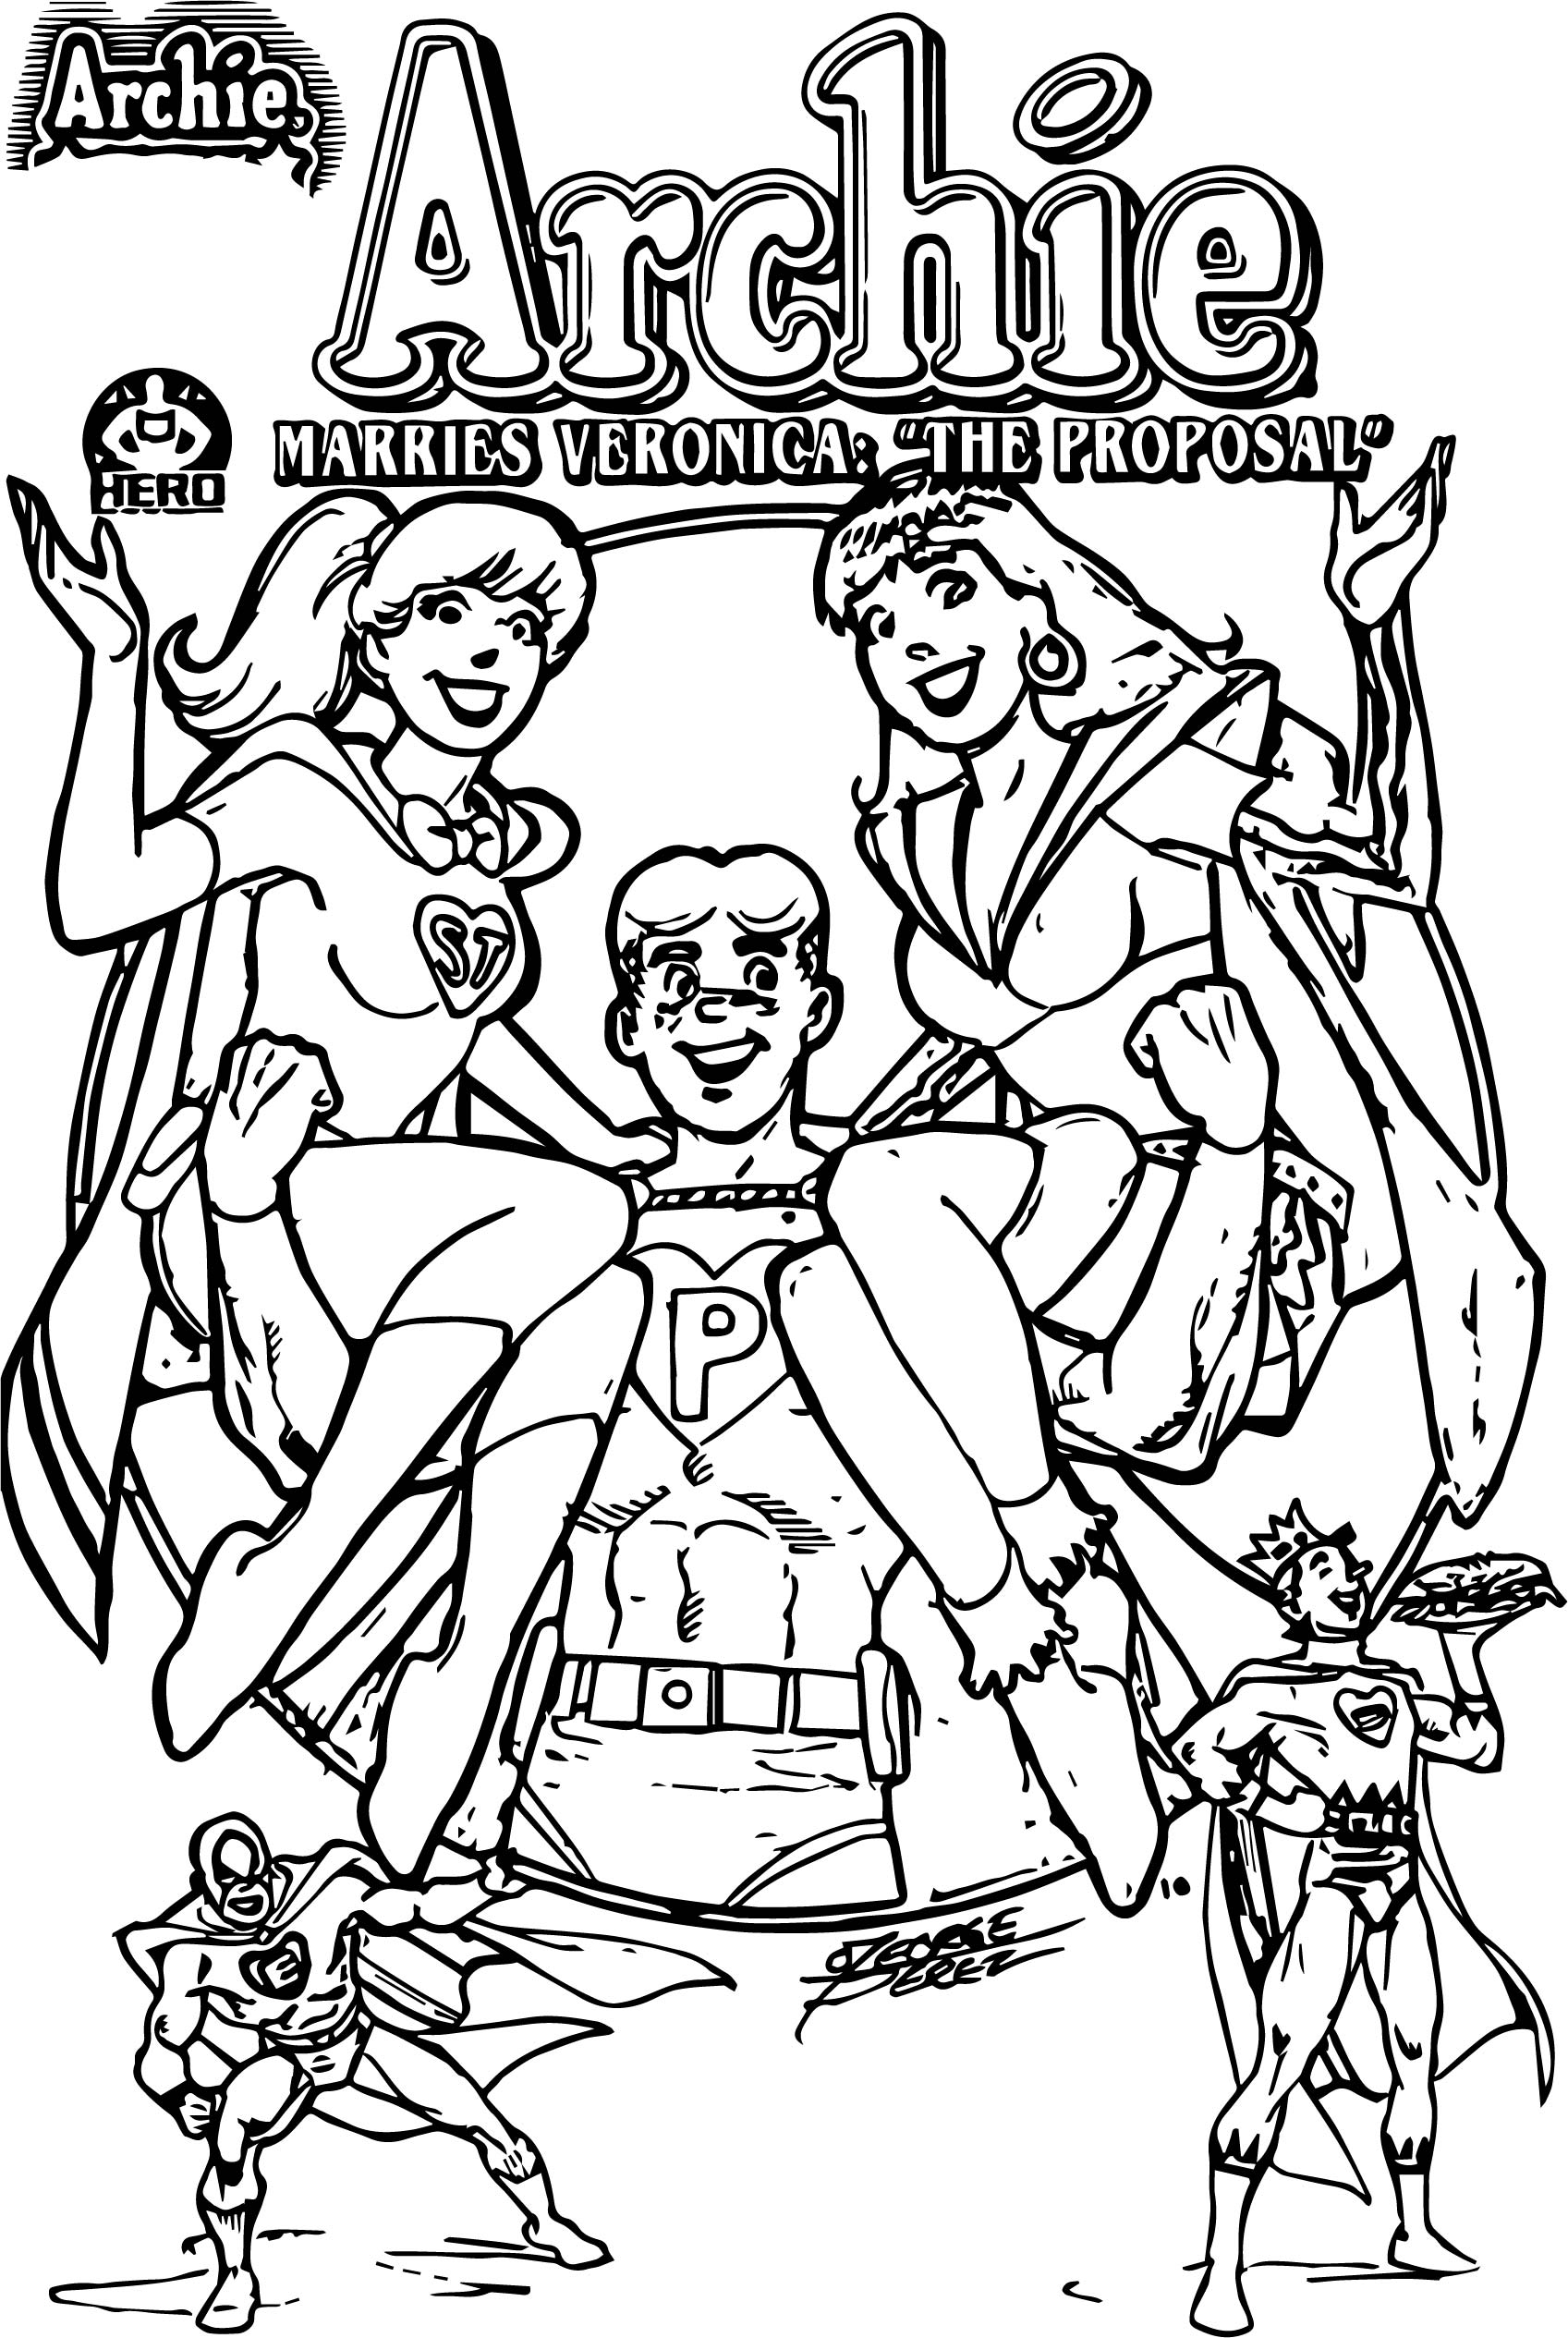 archie coloring pages - photo#19